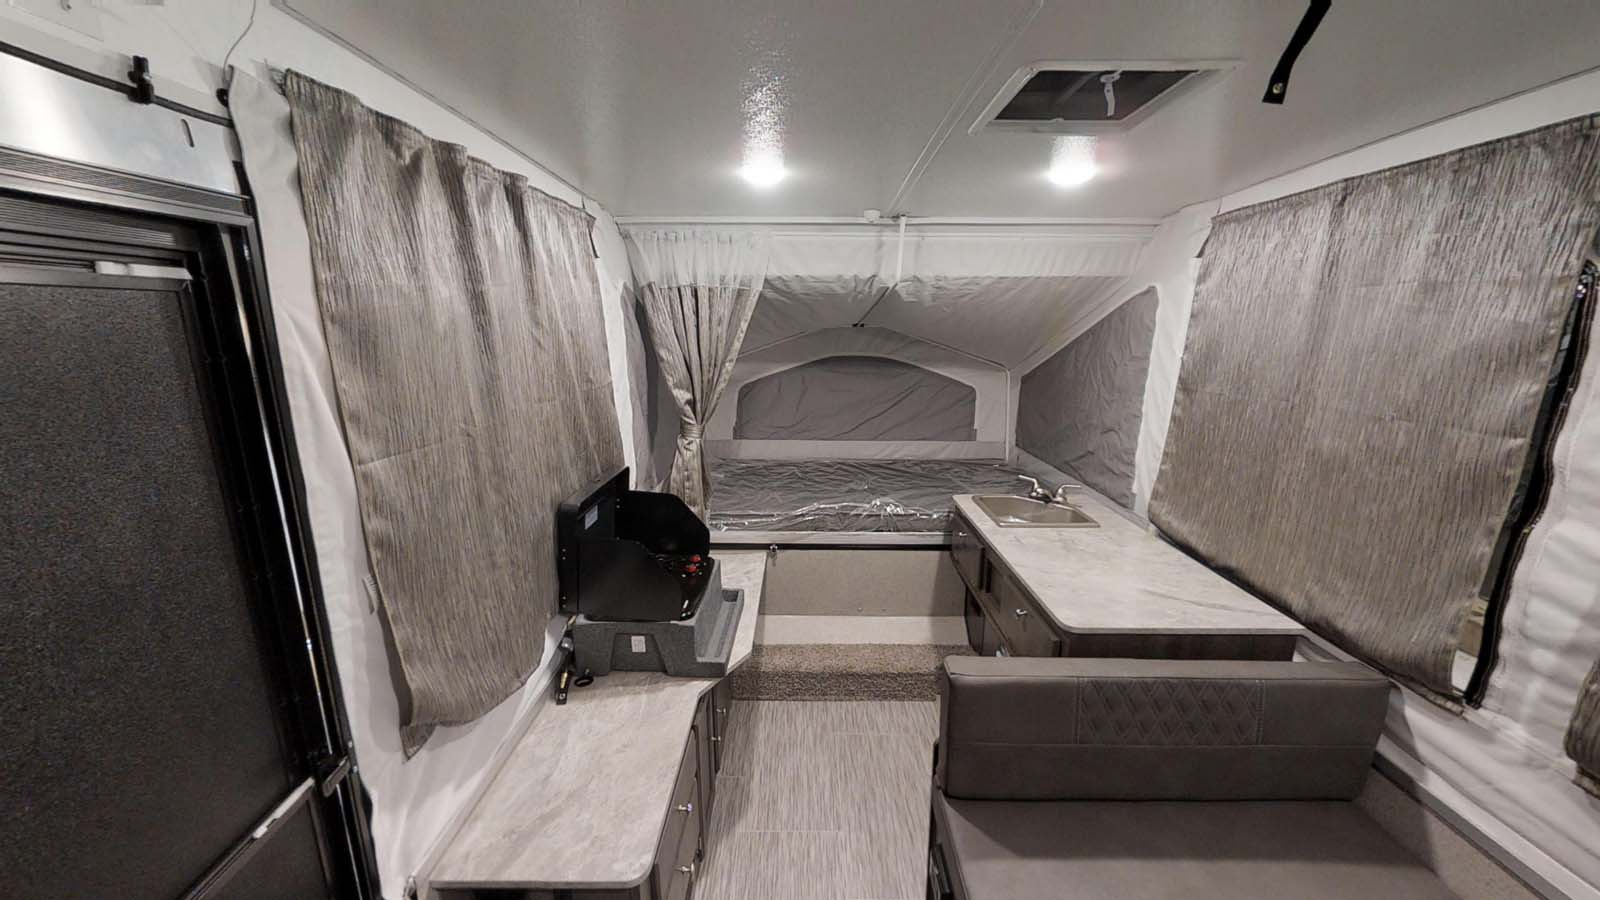 2021 FOREST RIVER FLAGSTAFF 206LTD NEW TENT TRAILER FOR SALE HALIFAX NS